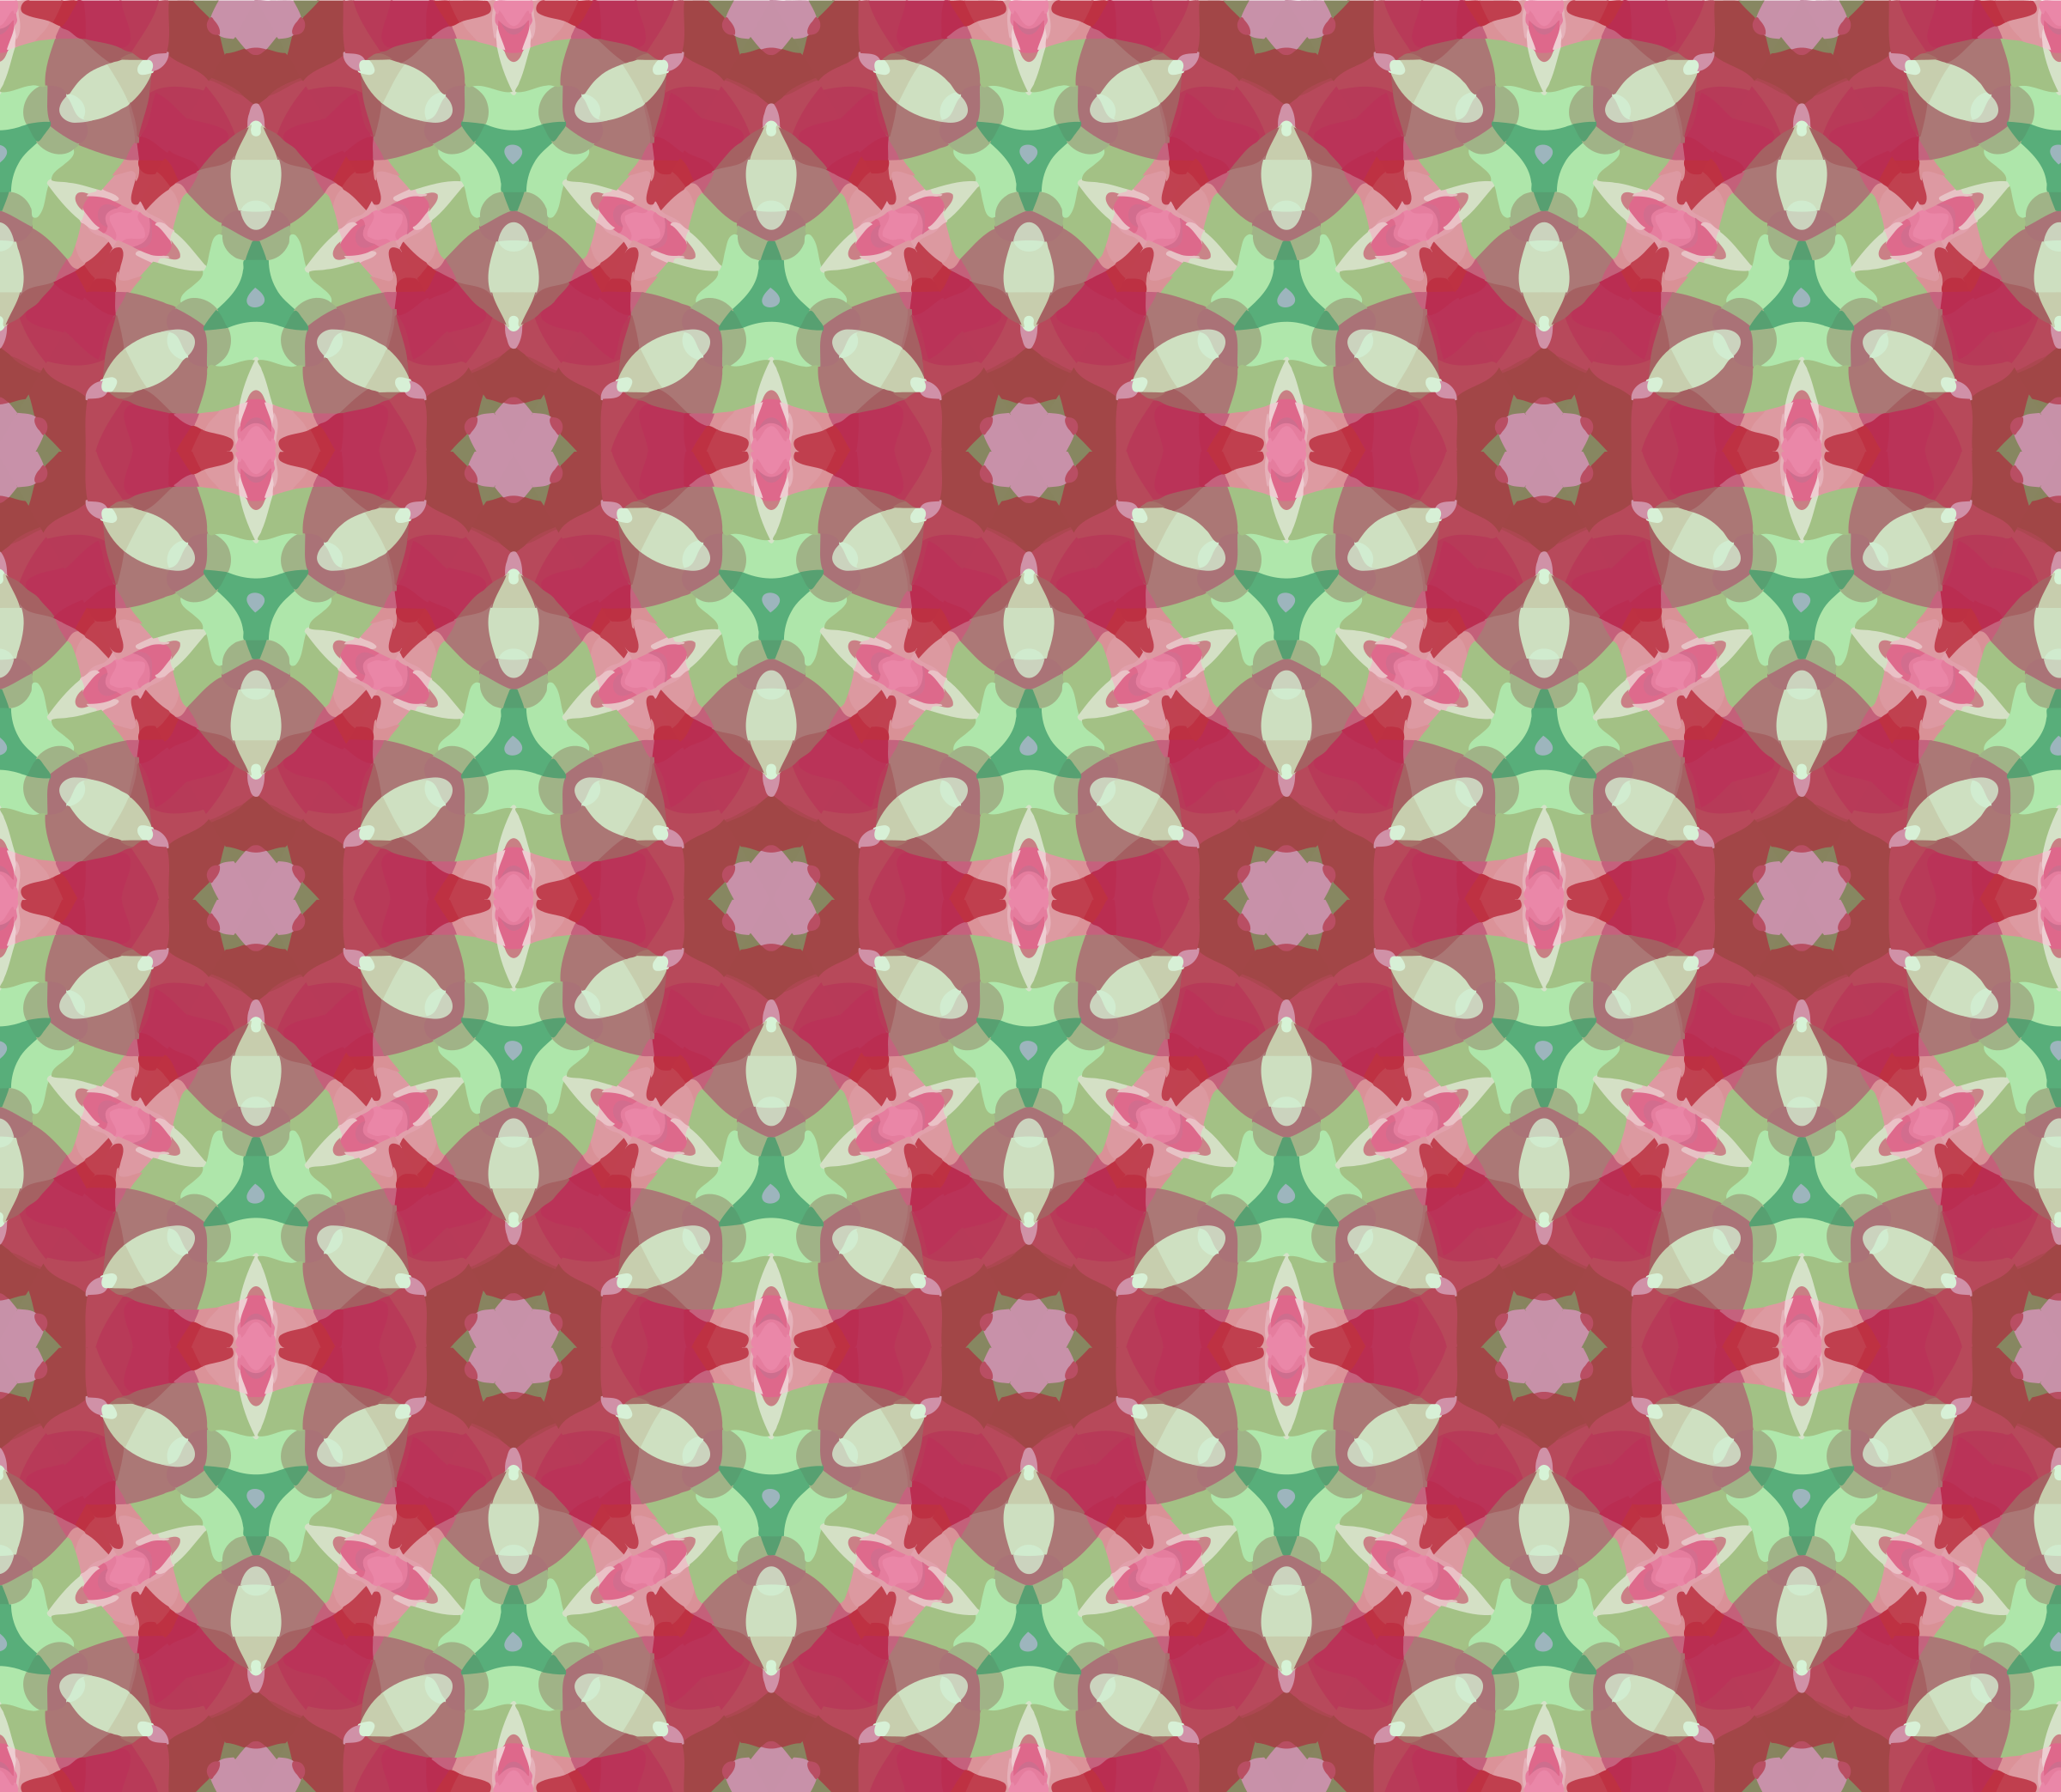 Background pattern 148 (colour 2) by Firkin